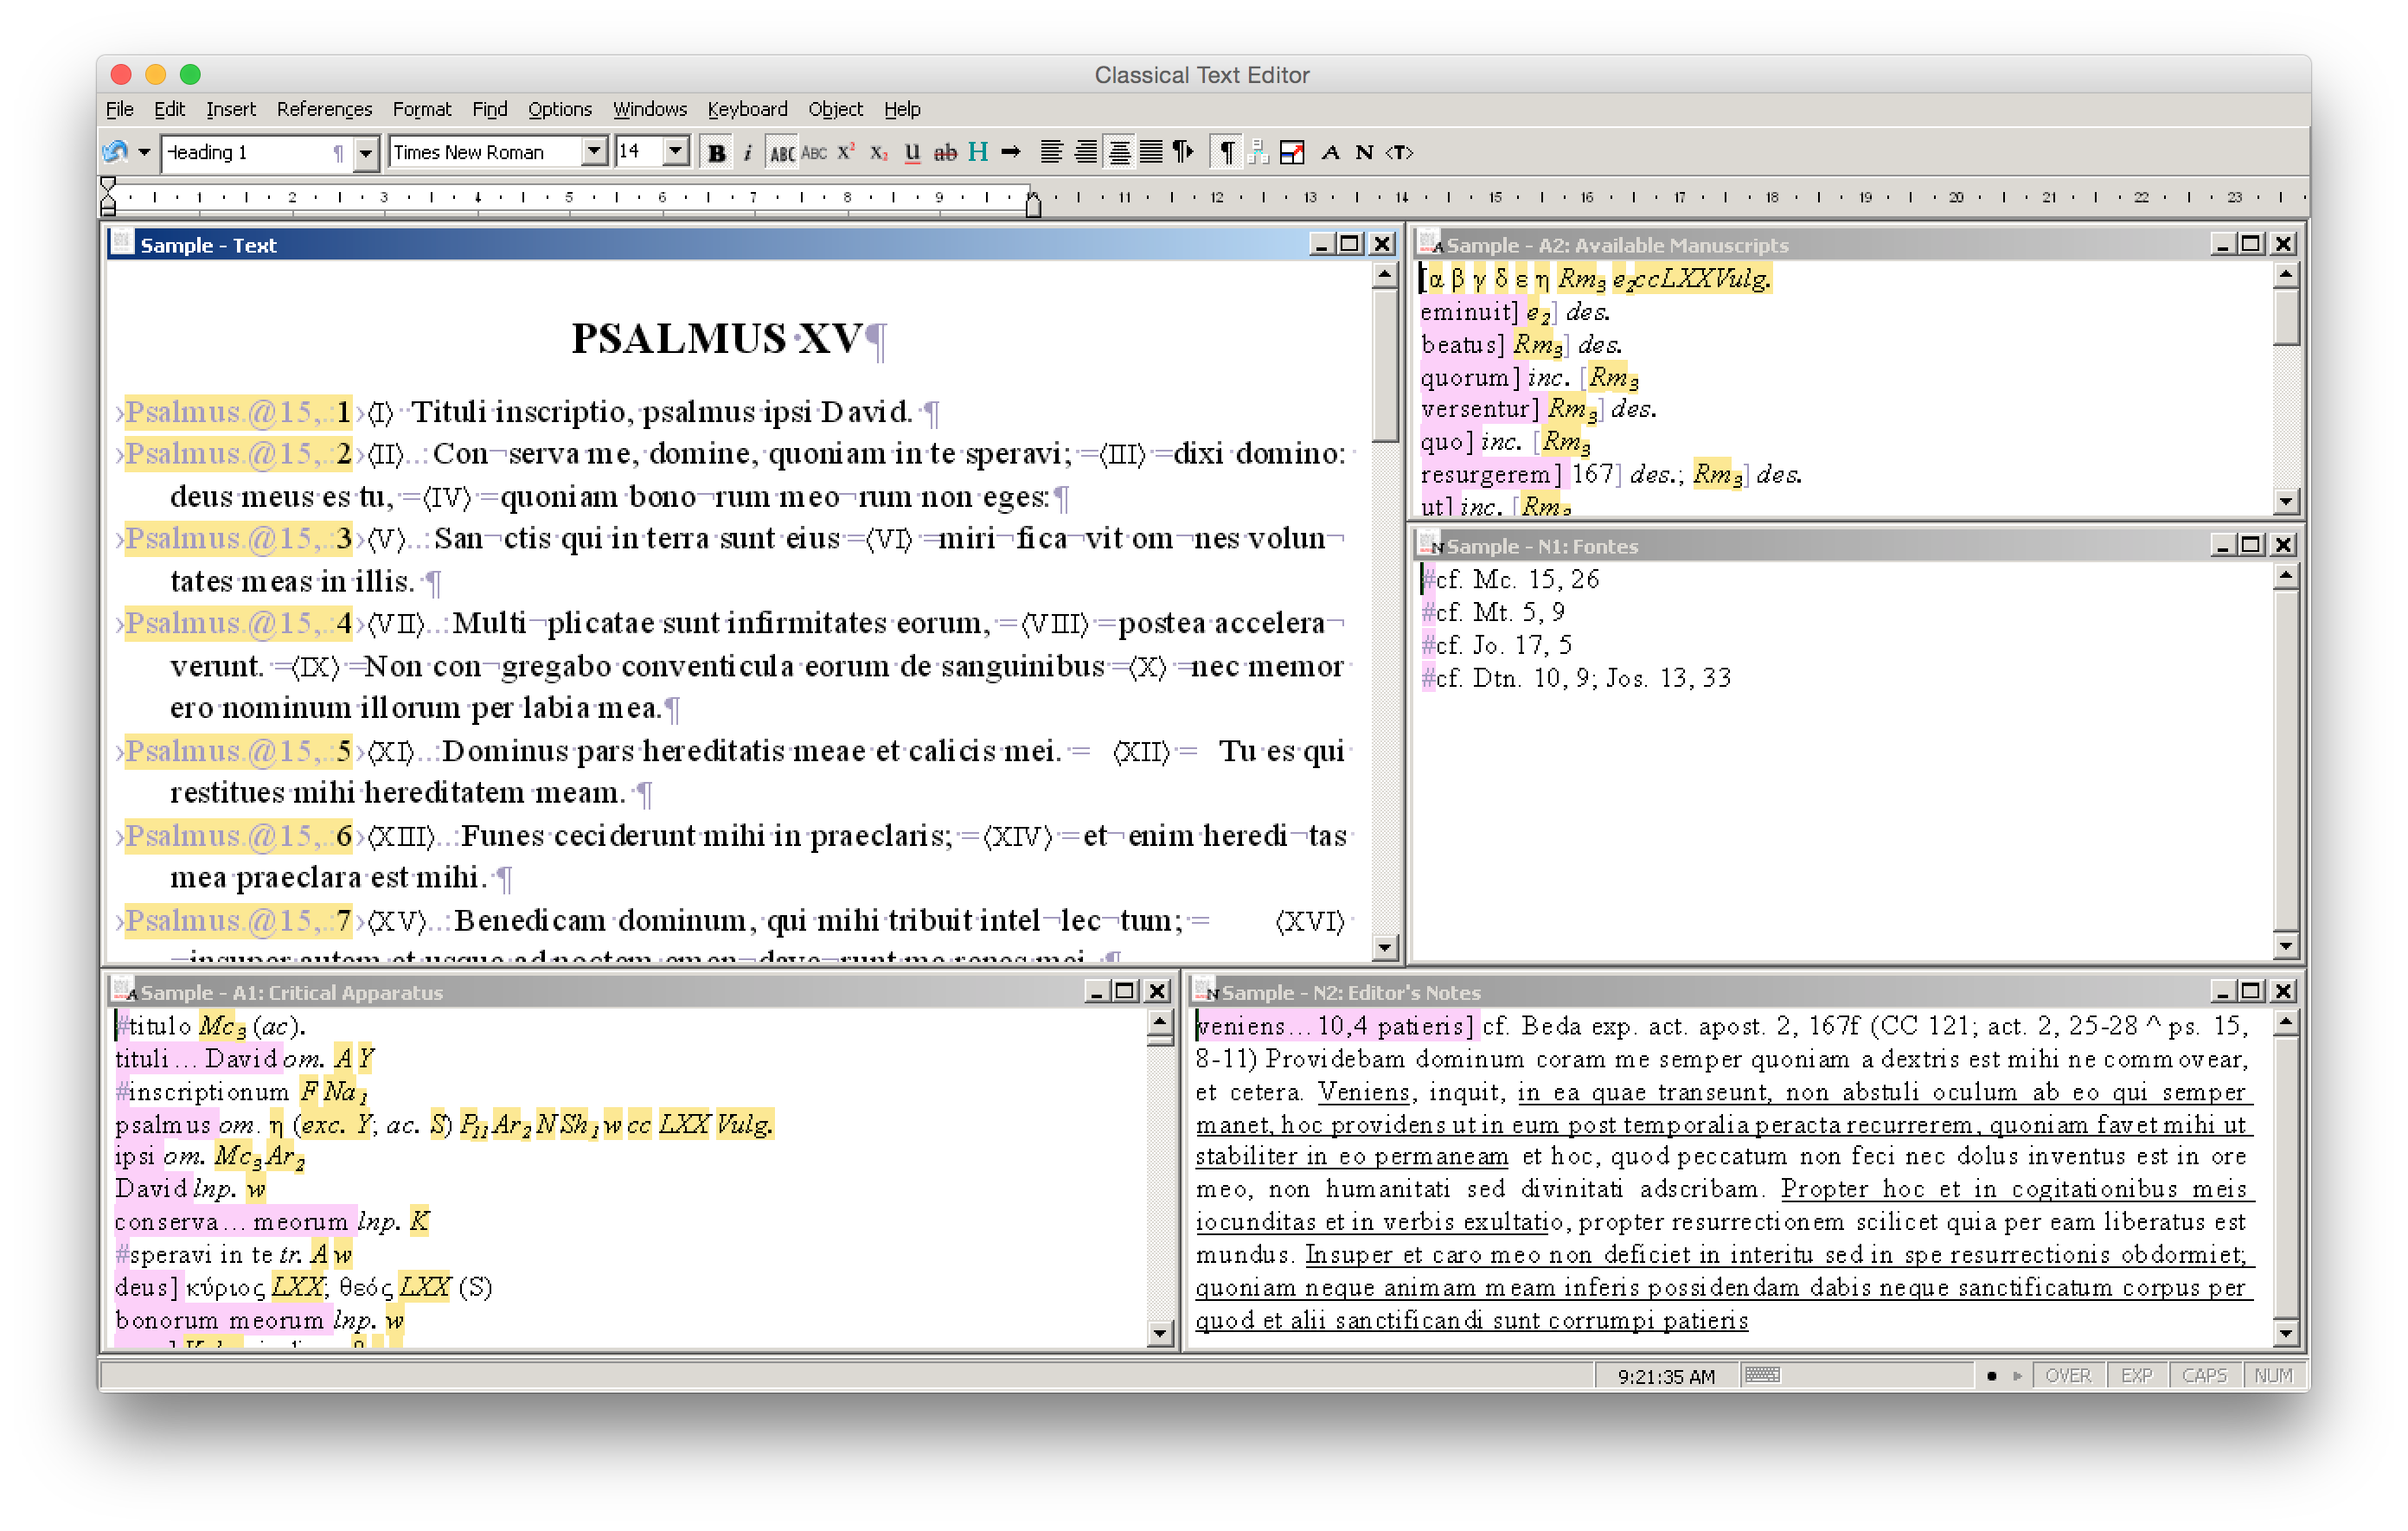 Classical Text Editor running under Wine